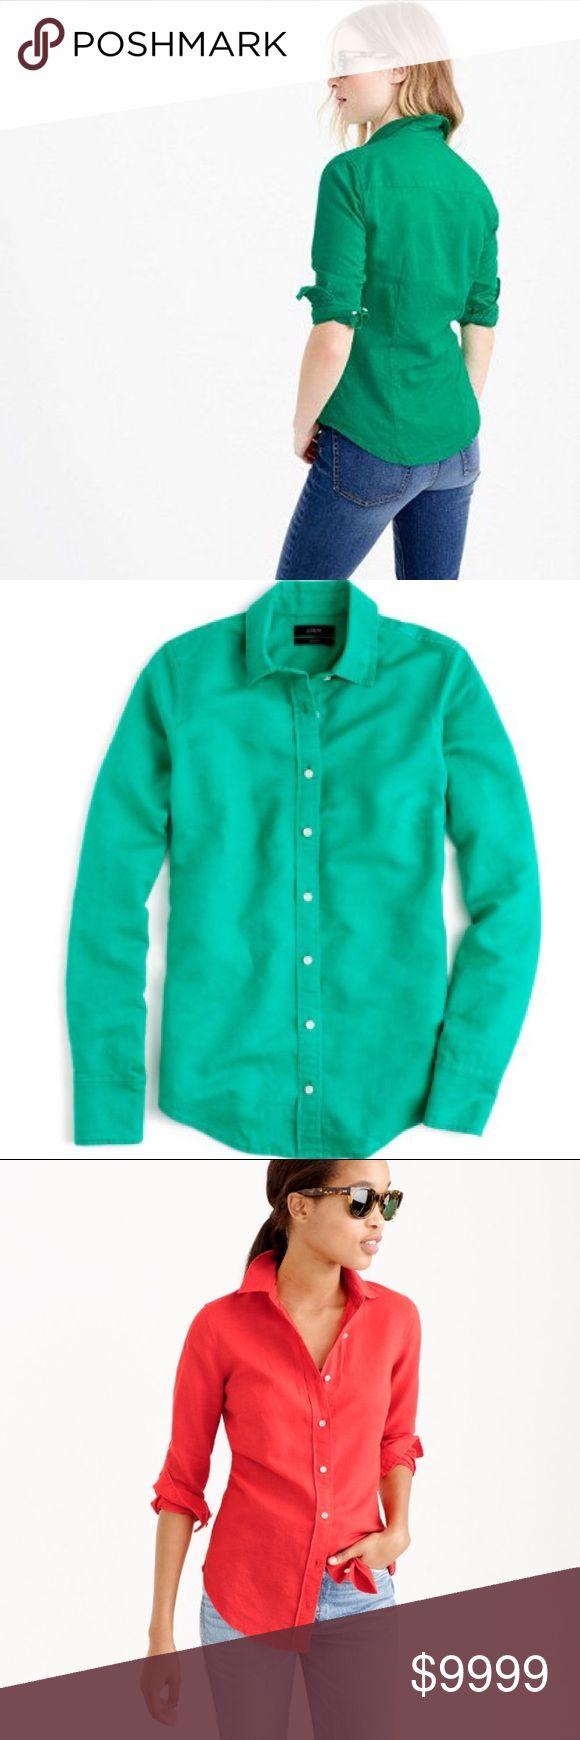 J. Crew Perfect Shirt in Cotton-Linen Our perfect shirt features precisely placed darts for a slimming, waist-defining fit that's a bit more tailored than our boy shirt. We made this one in a supersoft cotton-linen blend, then dyed it for a rich, nuanced color.  Cotton/linen. Long roll-up sleeves. Machine wash Color:Green Imperfections: some navy markings on back left shoulder Measurements coming soon! J. Crew Tops Button Down Shirts